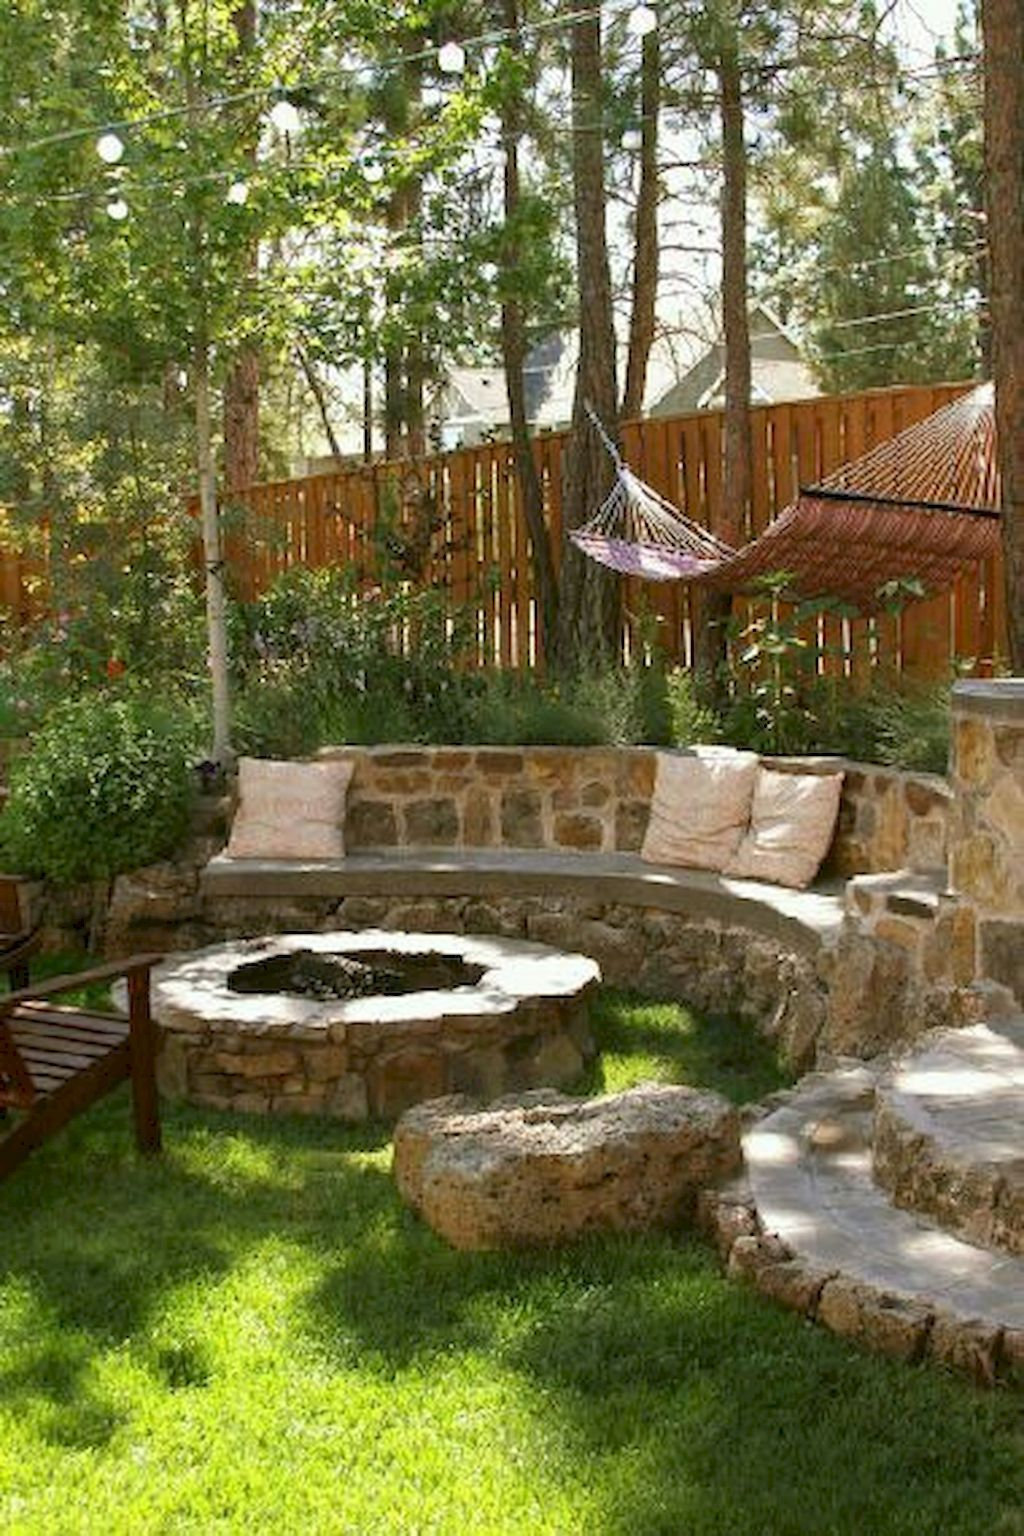 Landscaping Ideas Small Backyards Adorable 80 Small Backyard Landscaping Ideas on a Budget  https:--homespecially.com